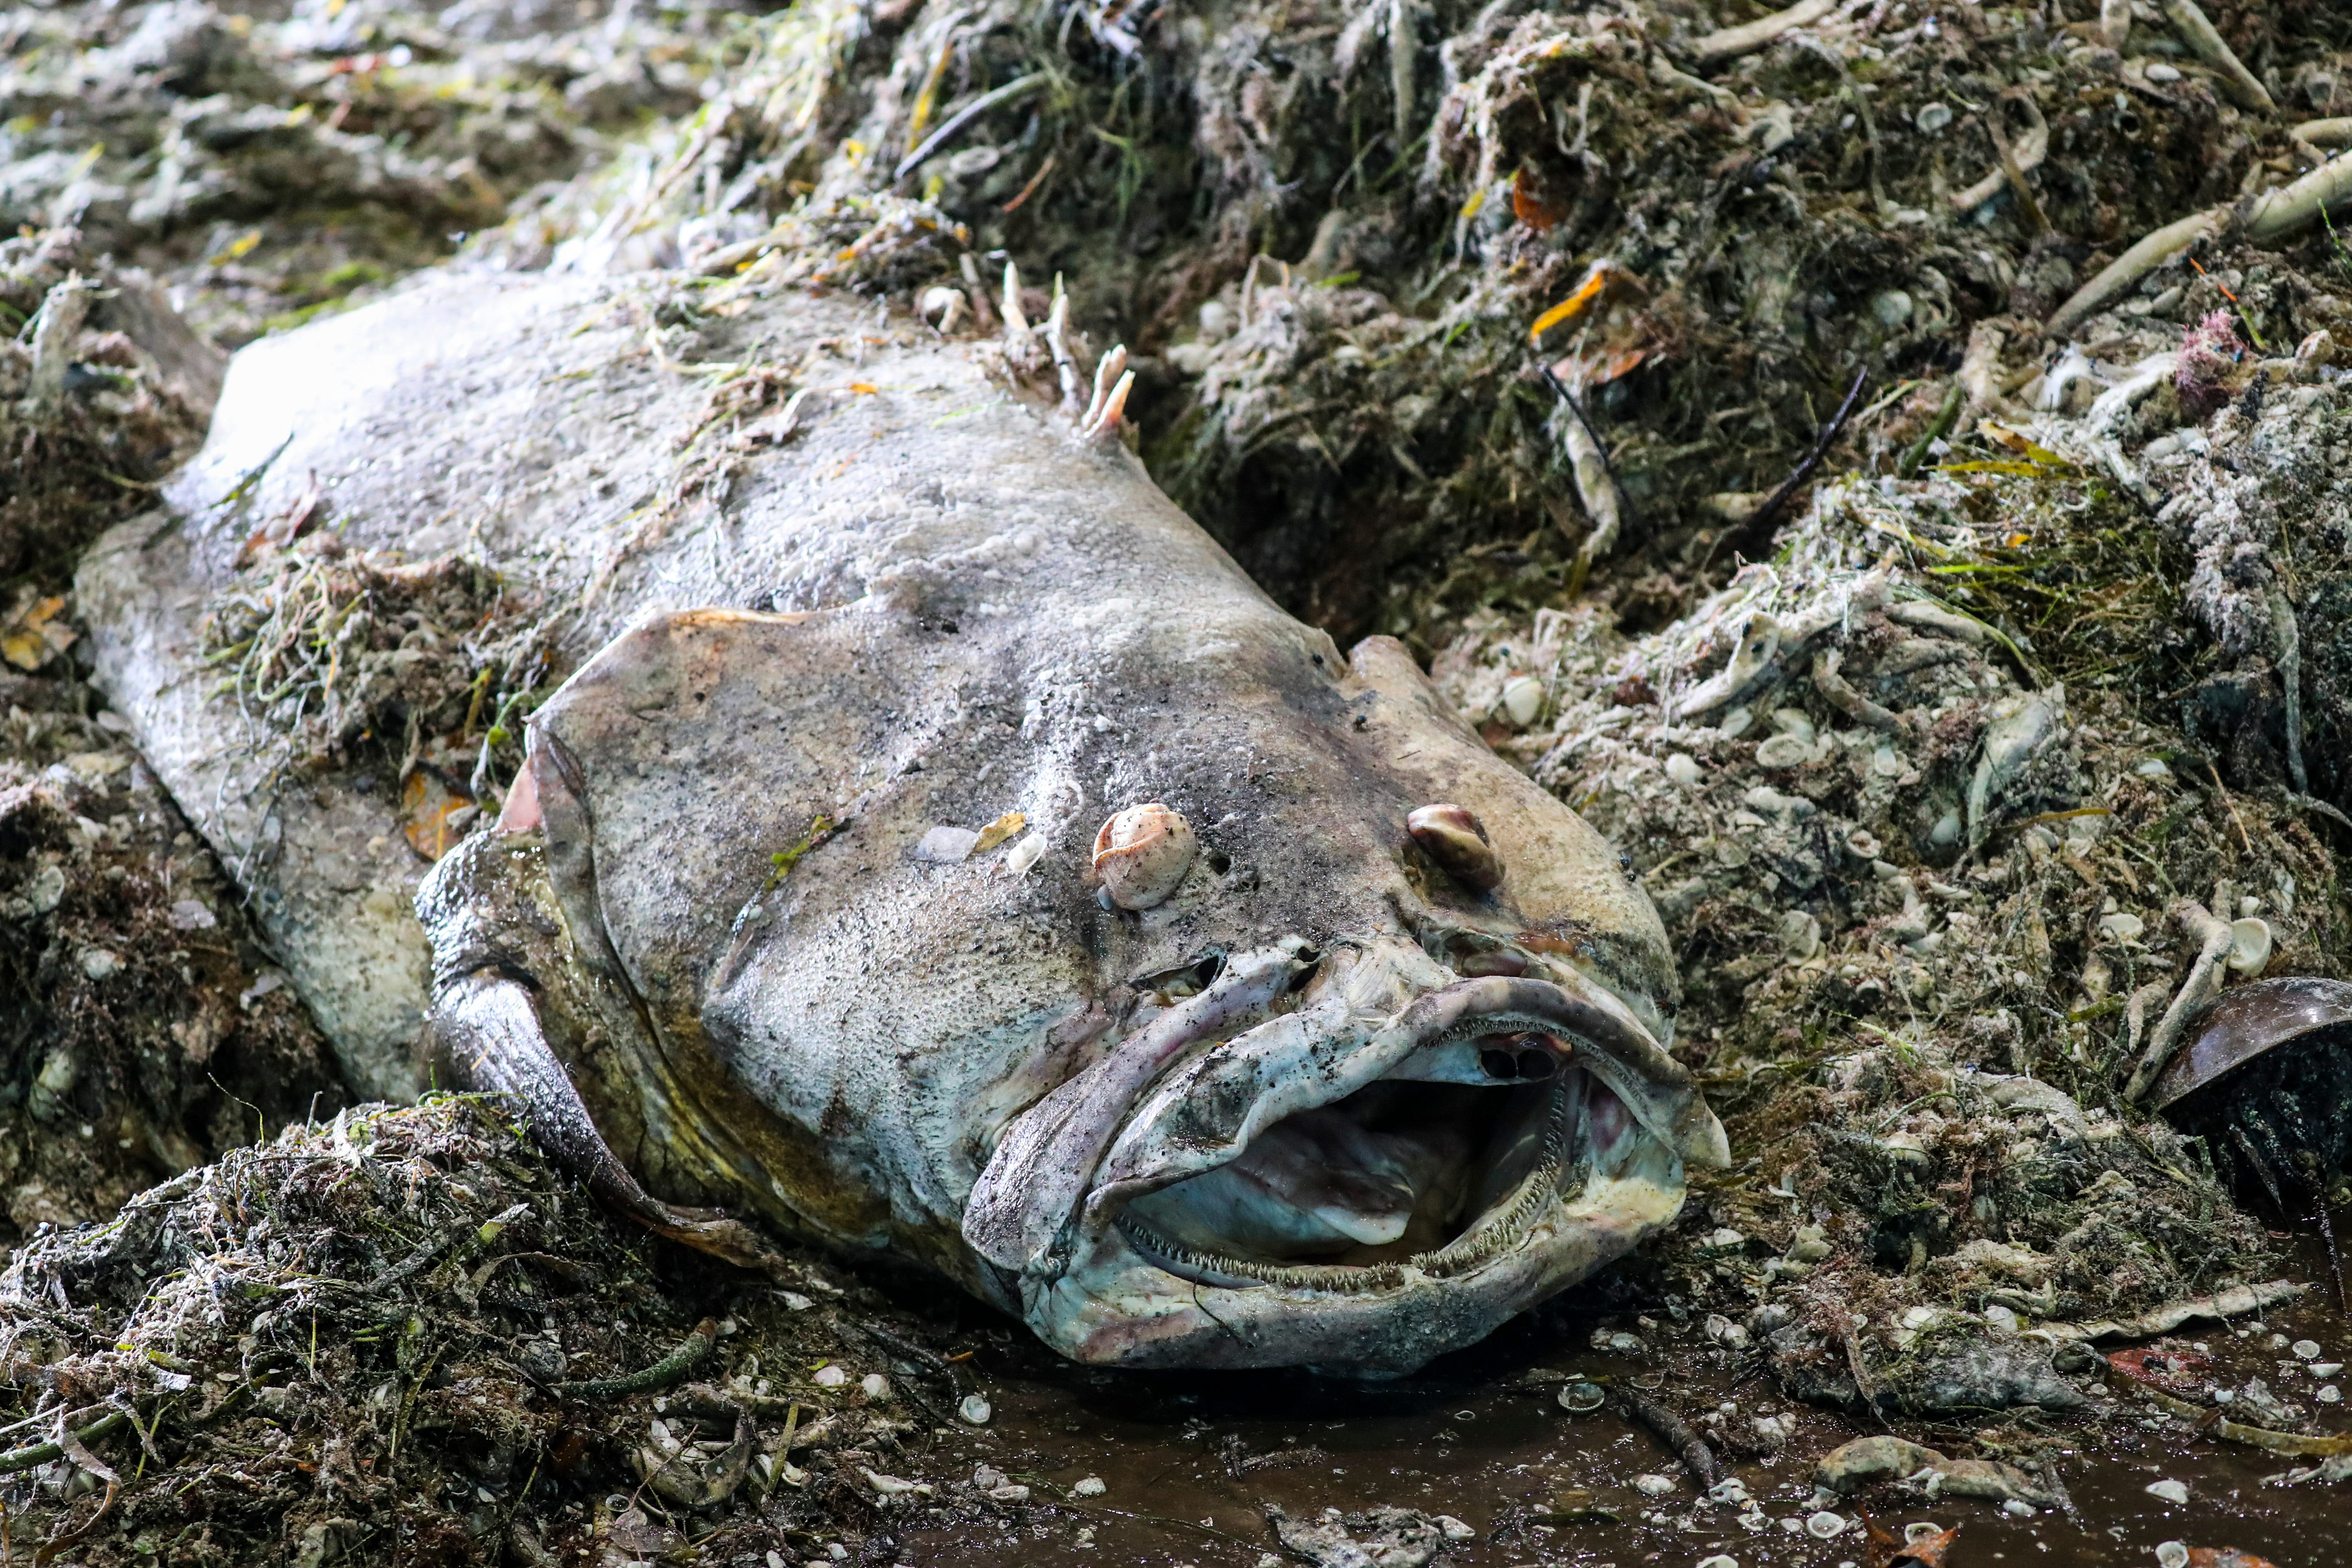 A fish that causes horror